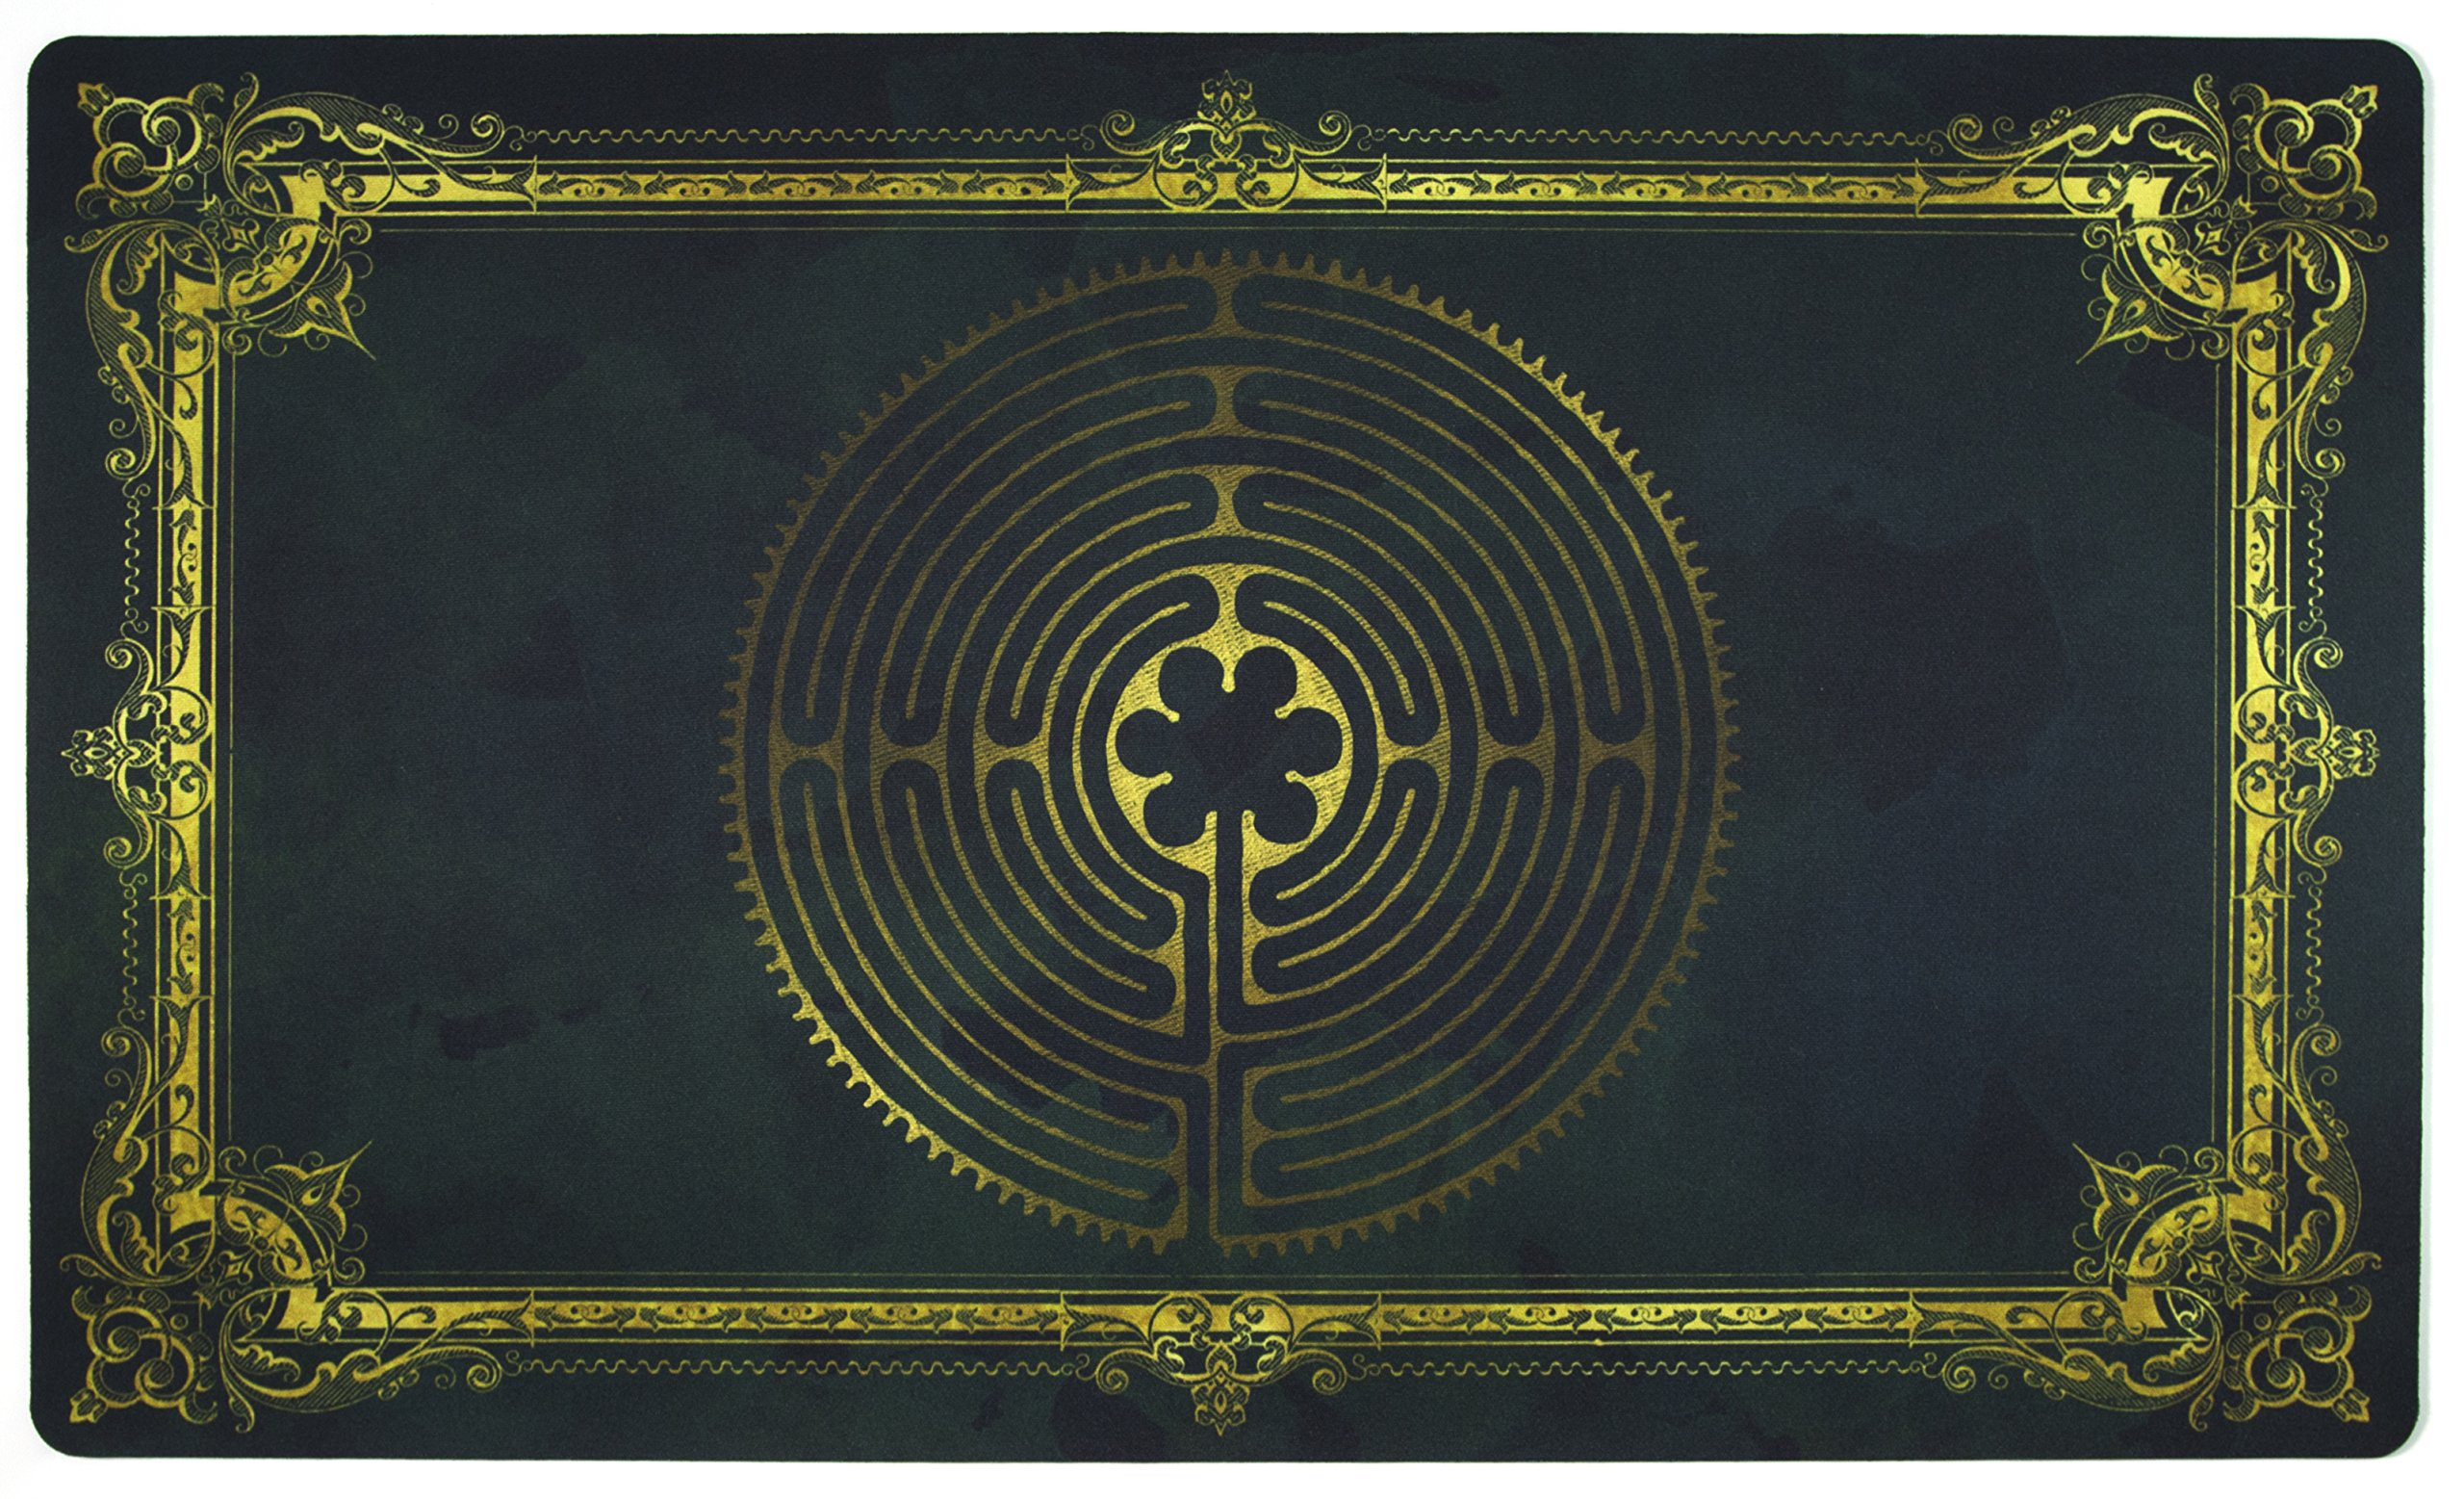 Labyrinth Charlemagne Playmat Inked Gaming - Inked Playmats / Perfect for MtG Pokemon & YuGiOh Magic the Gathering TCG Game Mat